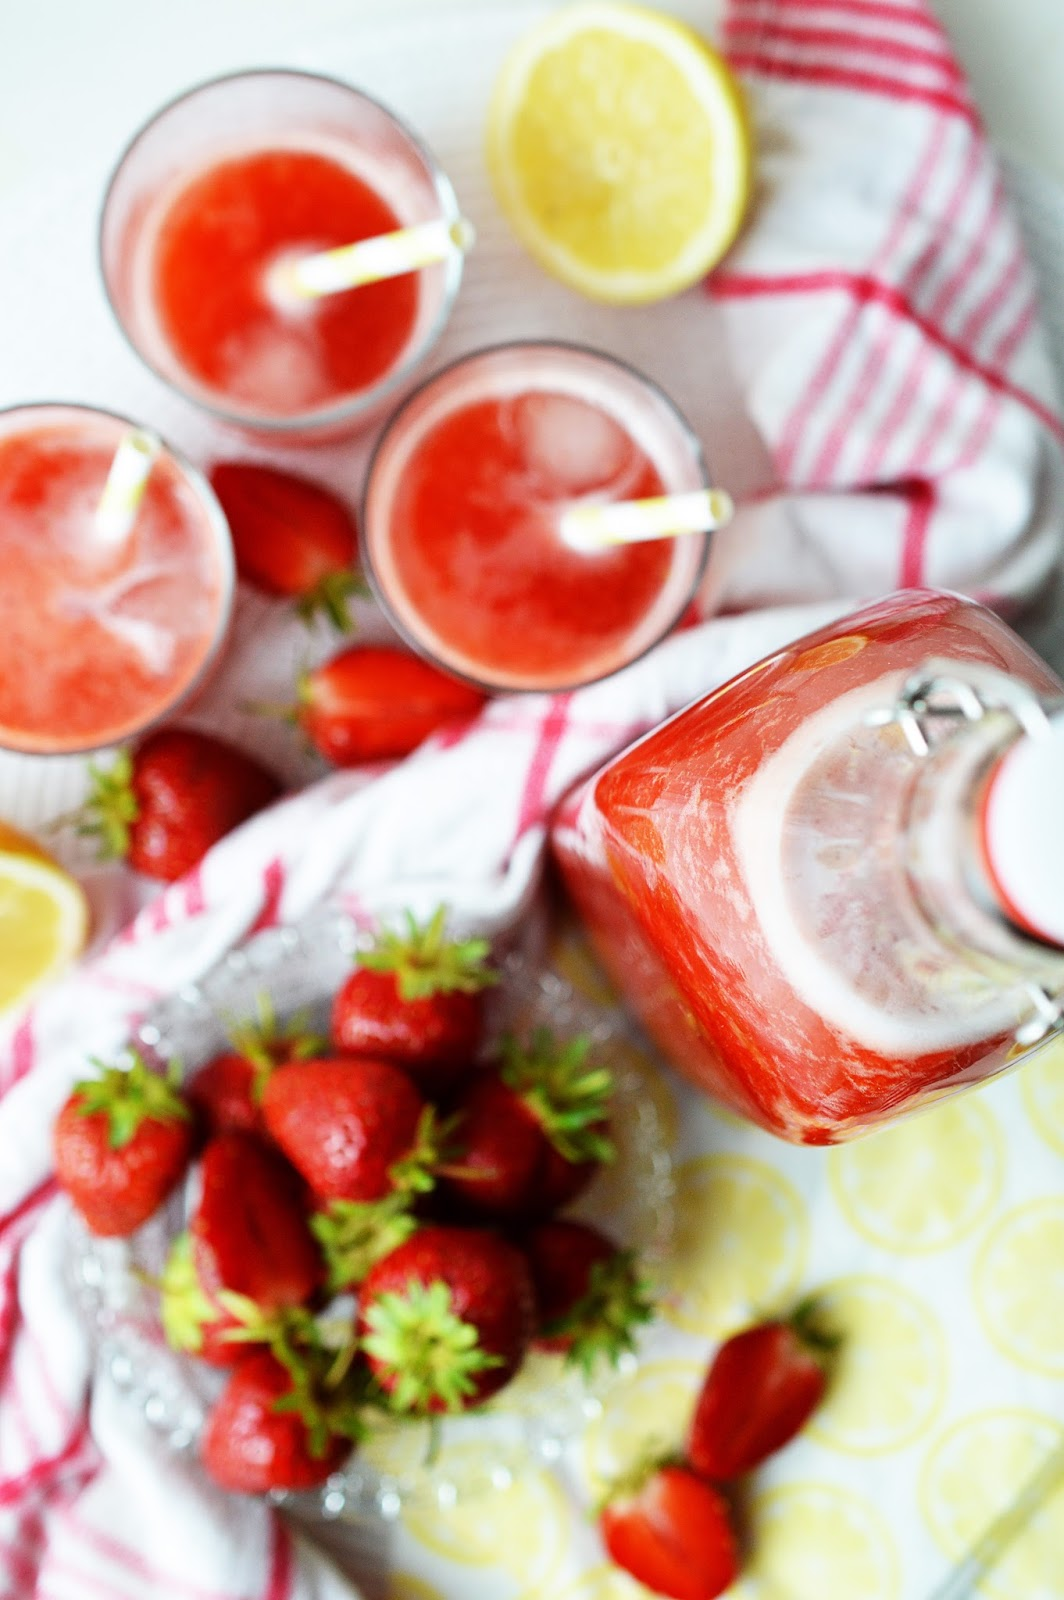 Strawberry Lemonade Recipe | Motte's Blog